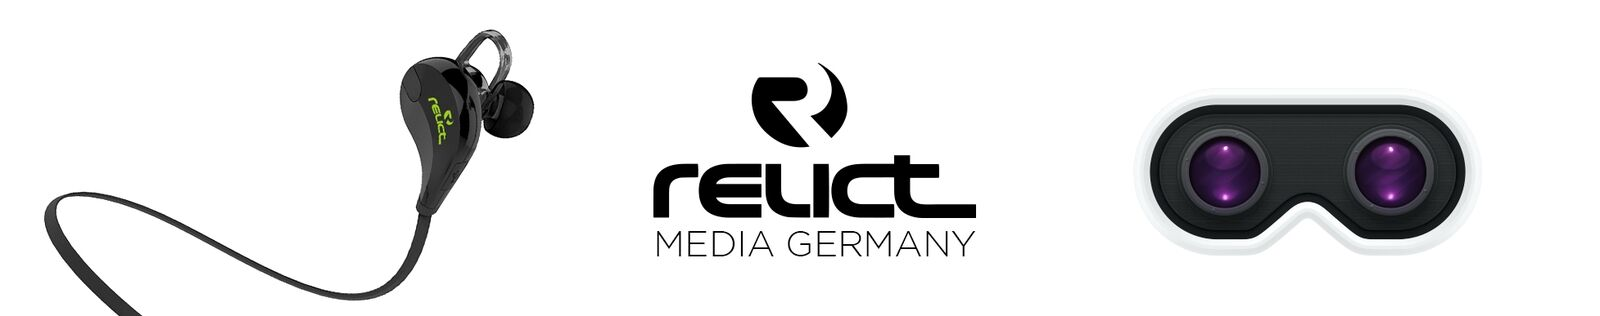 RELICT - VR MEDIA HOUSE GERMANY